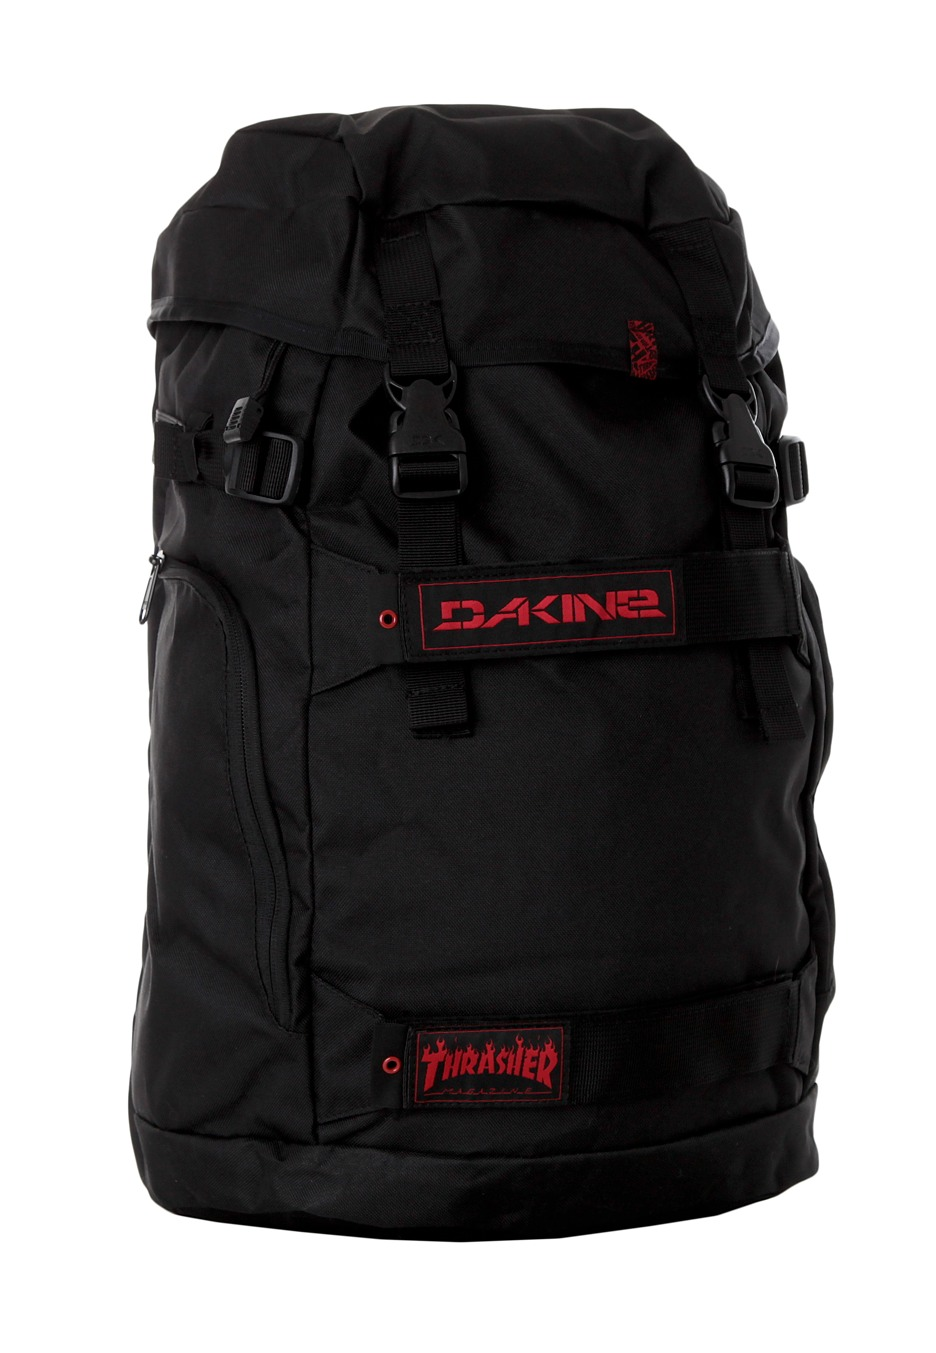 Dakine - Burnside Thrasher Collab - Backpack - Impericon.com Worldwide